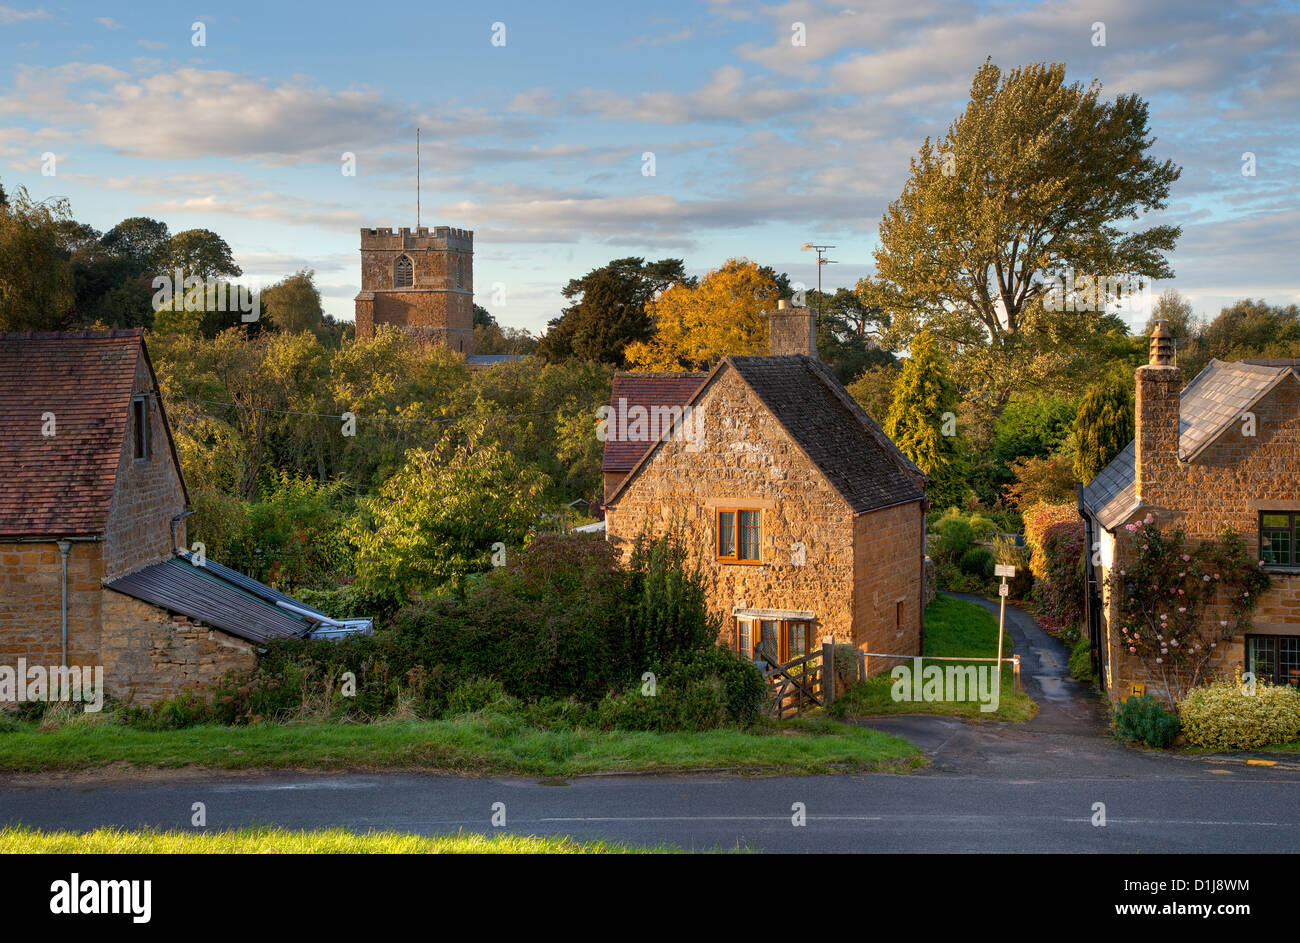 Cotswold village at sunset, Ilmington, Warwickshire, England Stock Photo